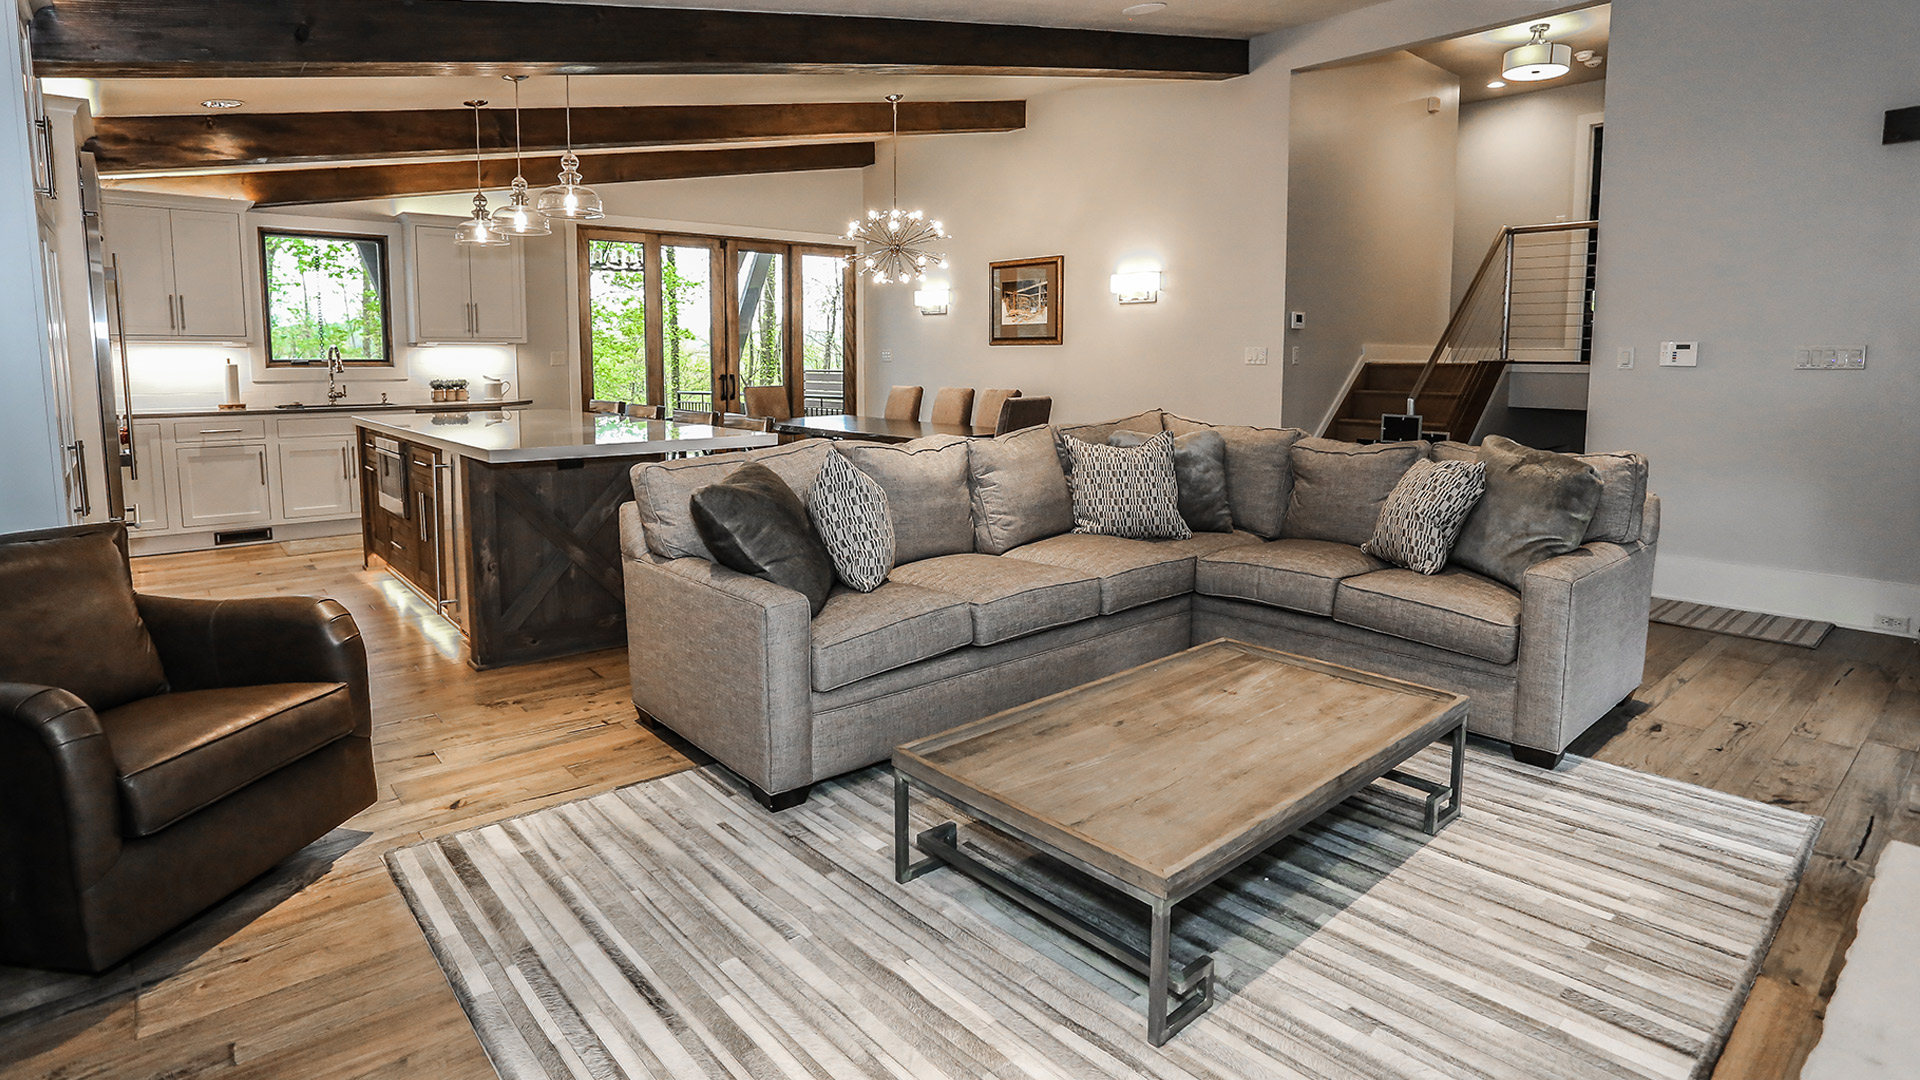 interior shot of greystone's living area. The colors in the room are a neutral gray tone. There is a plush couch surrounding a wooden coffee table. It is an open floor plan with exposed wooden beams on the ceiling.